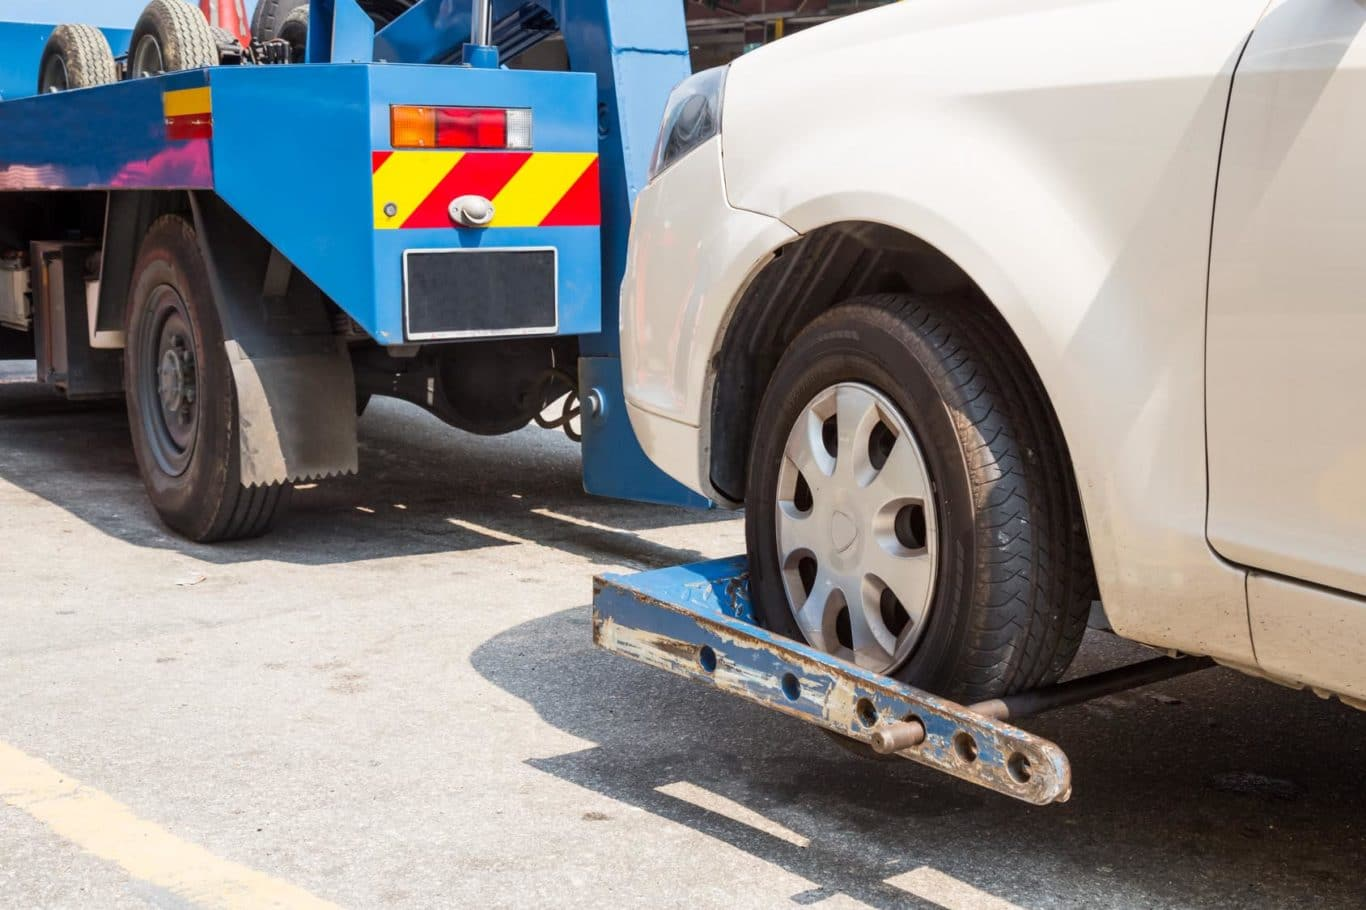 Coolock expert Breakdown Recovery services